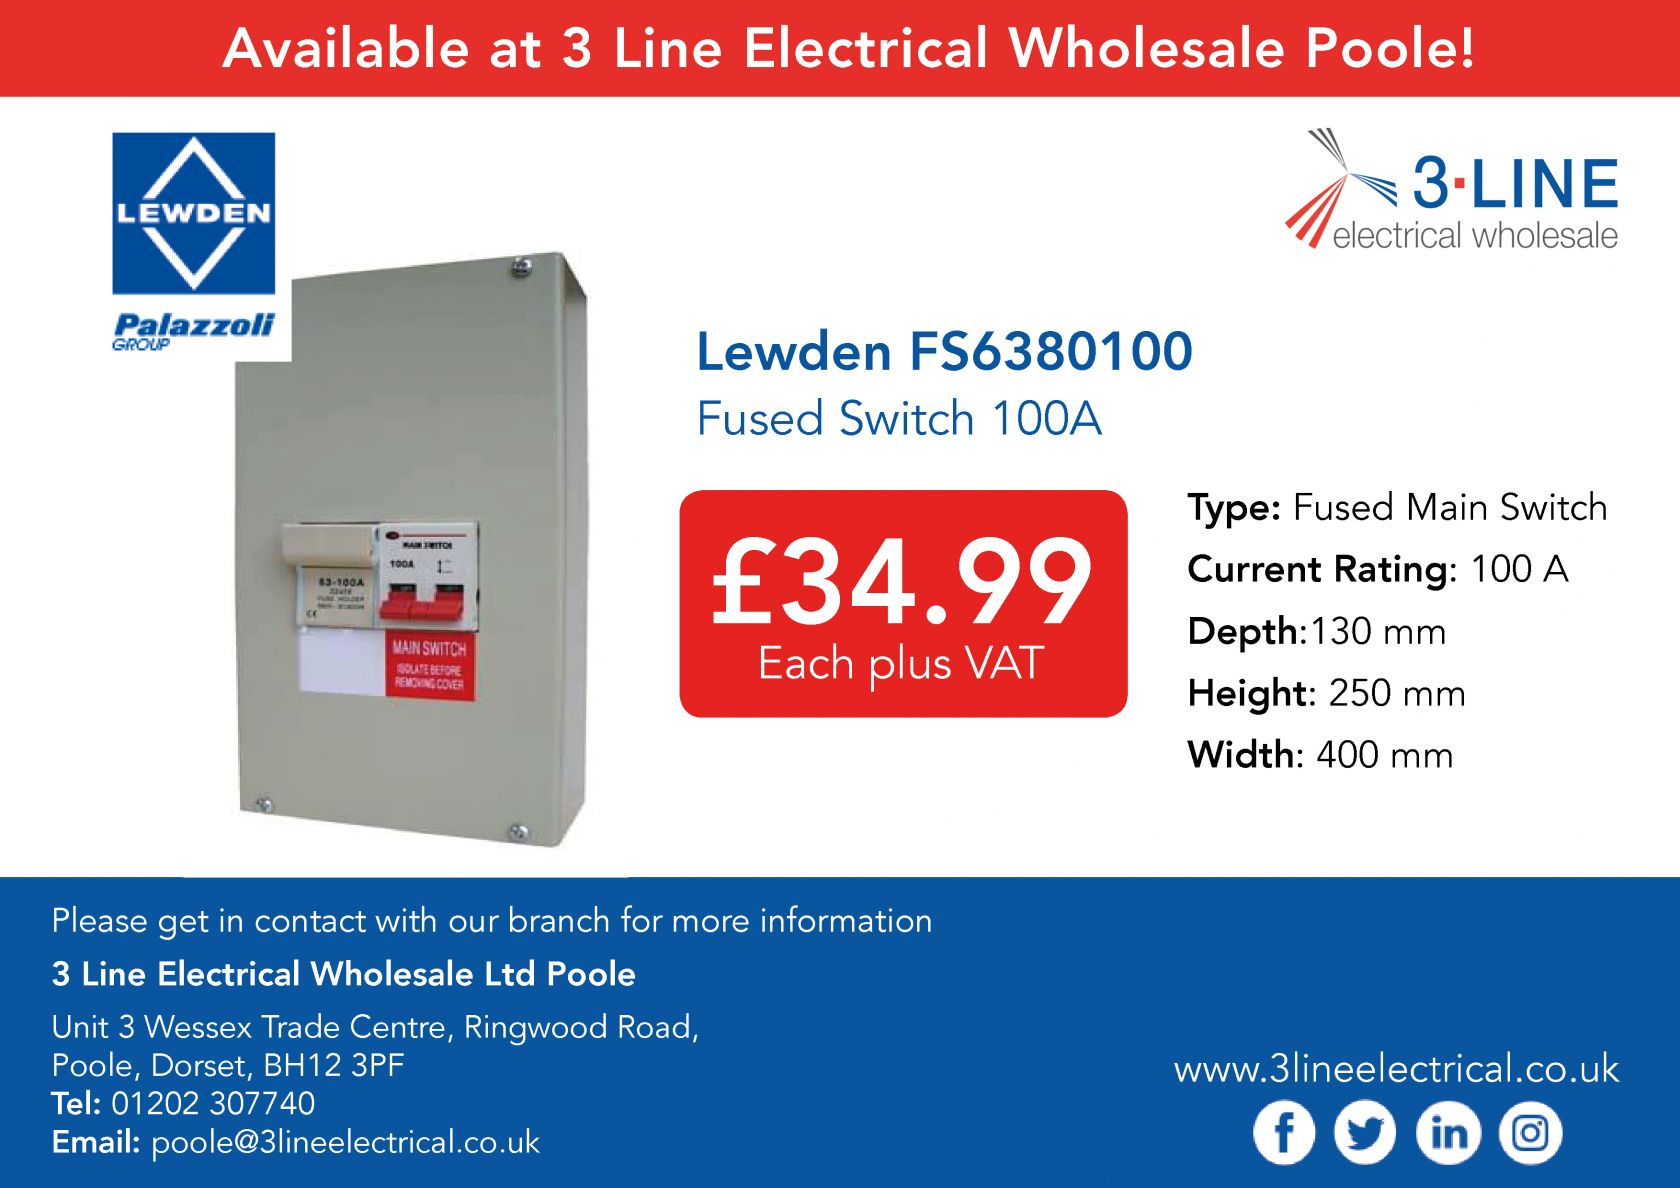 Lewden FS6380100 Fused Switch 100A (Poole branch)